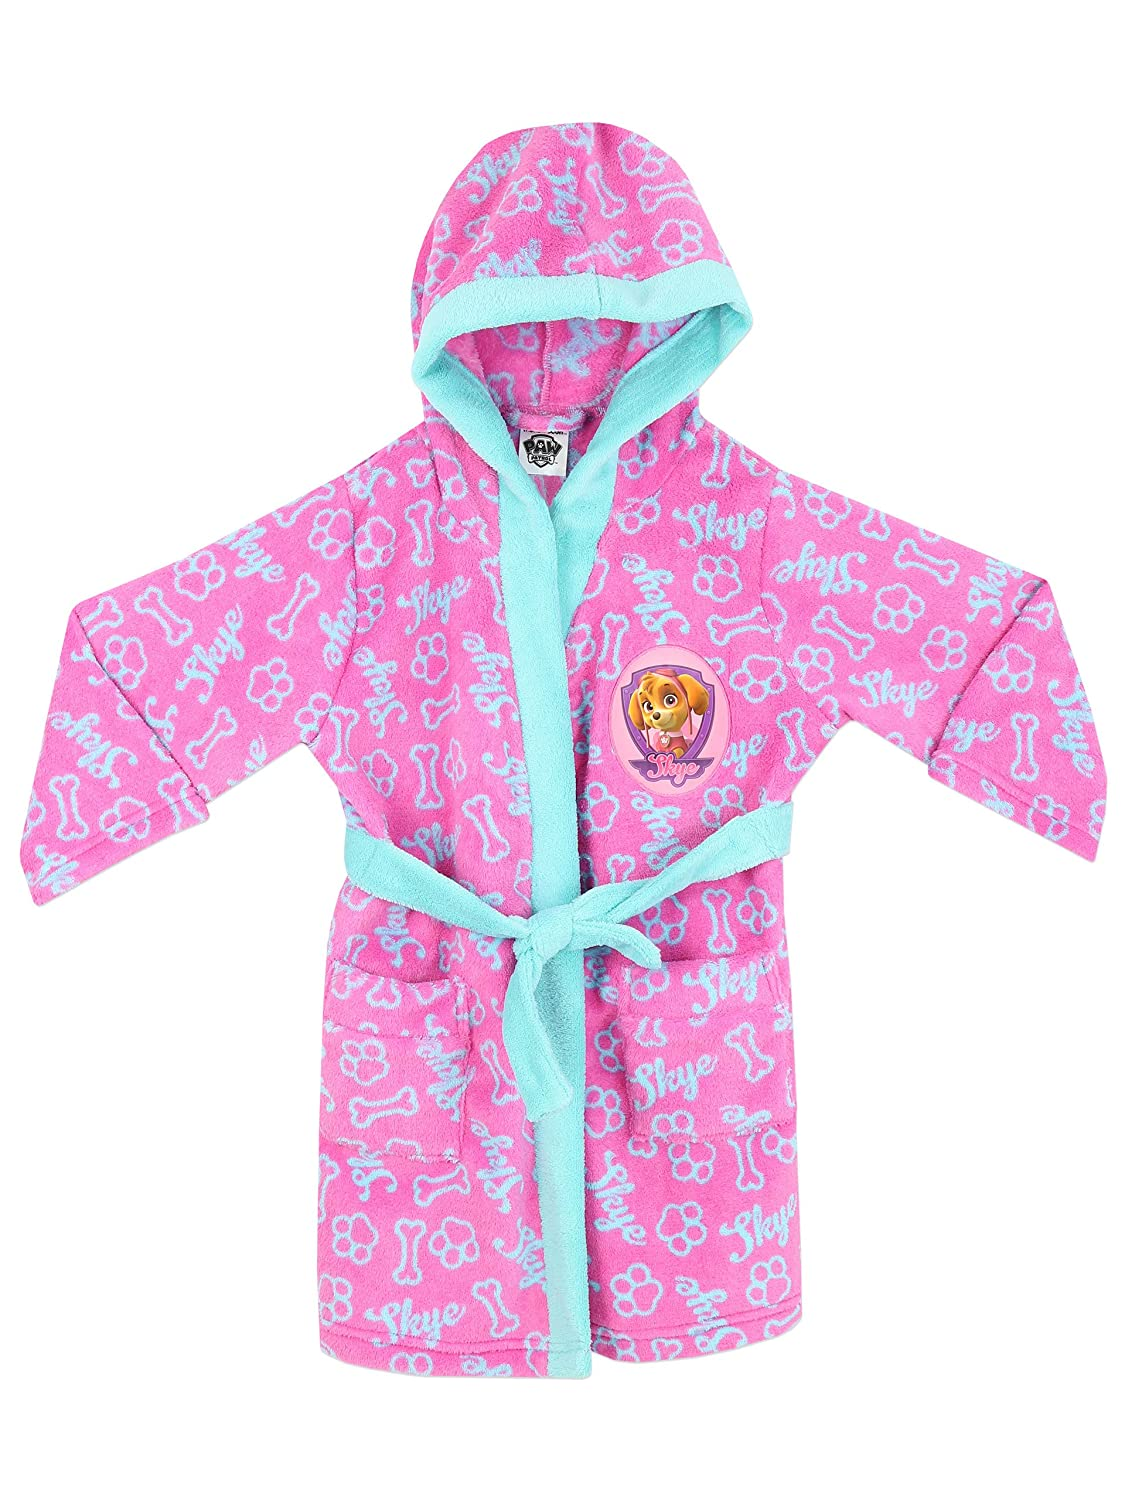 Paw Patrol Girls Skye Dressing Gown Ages 18 Months to 6 Years ...